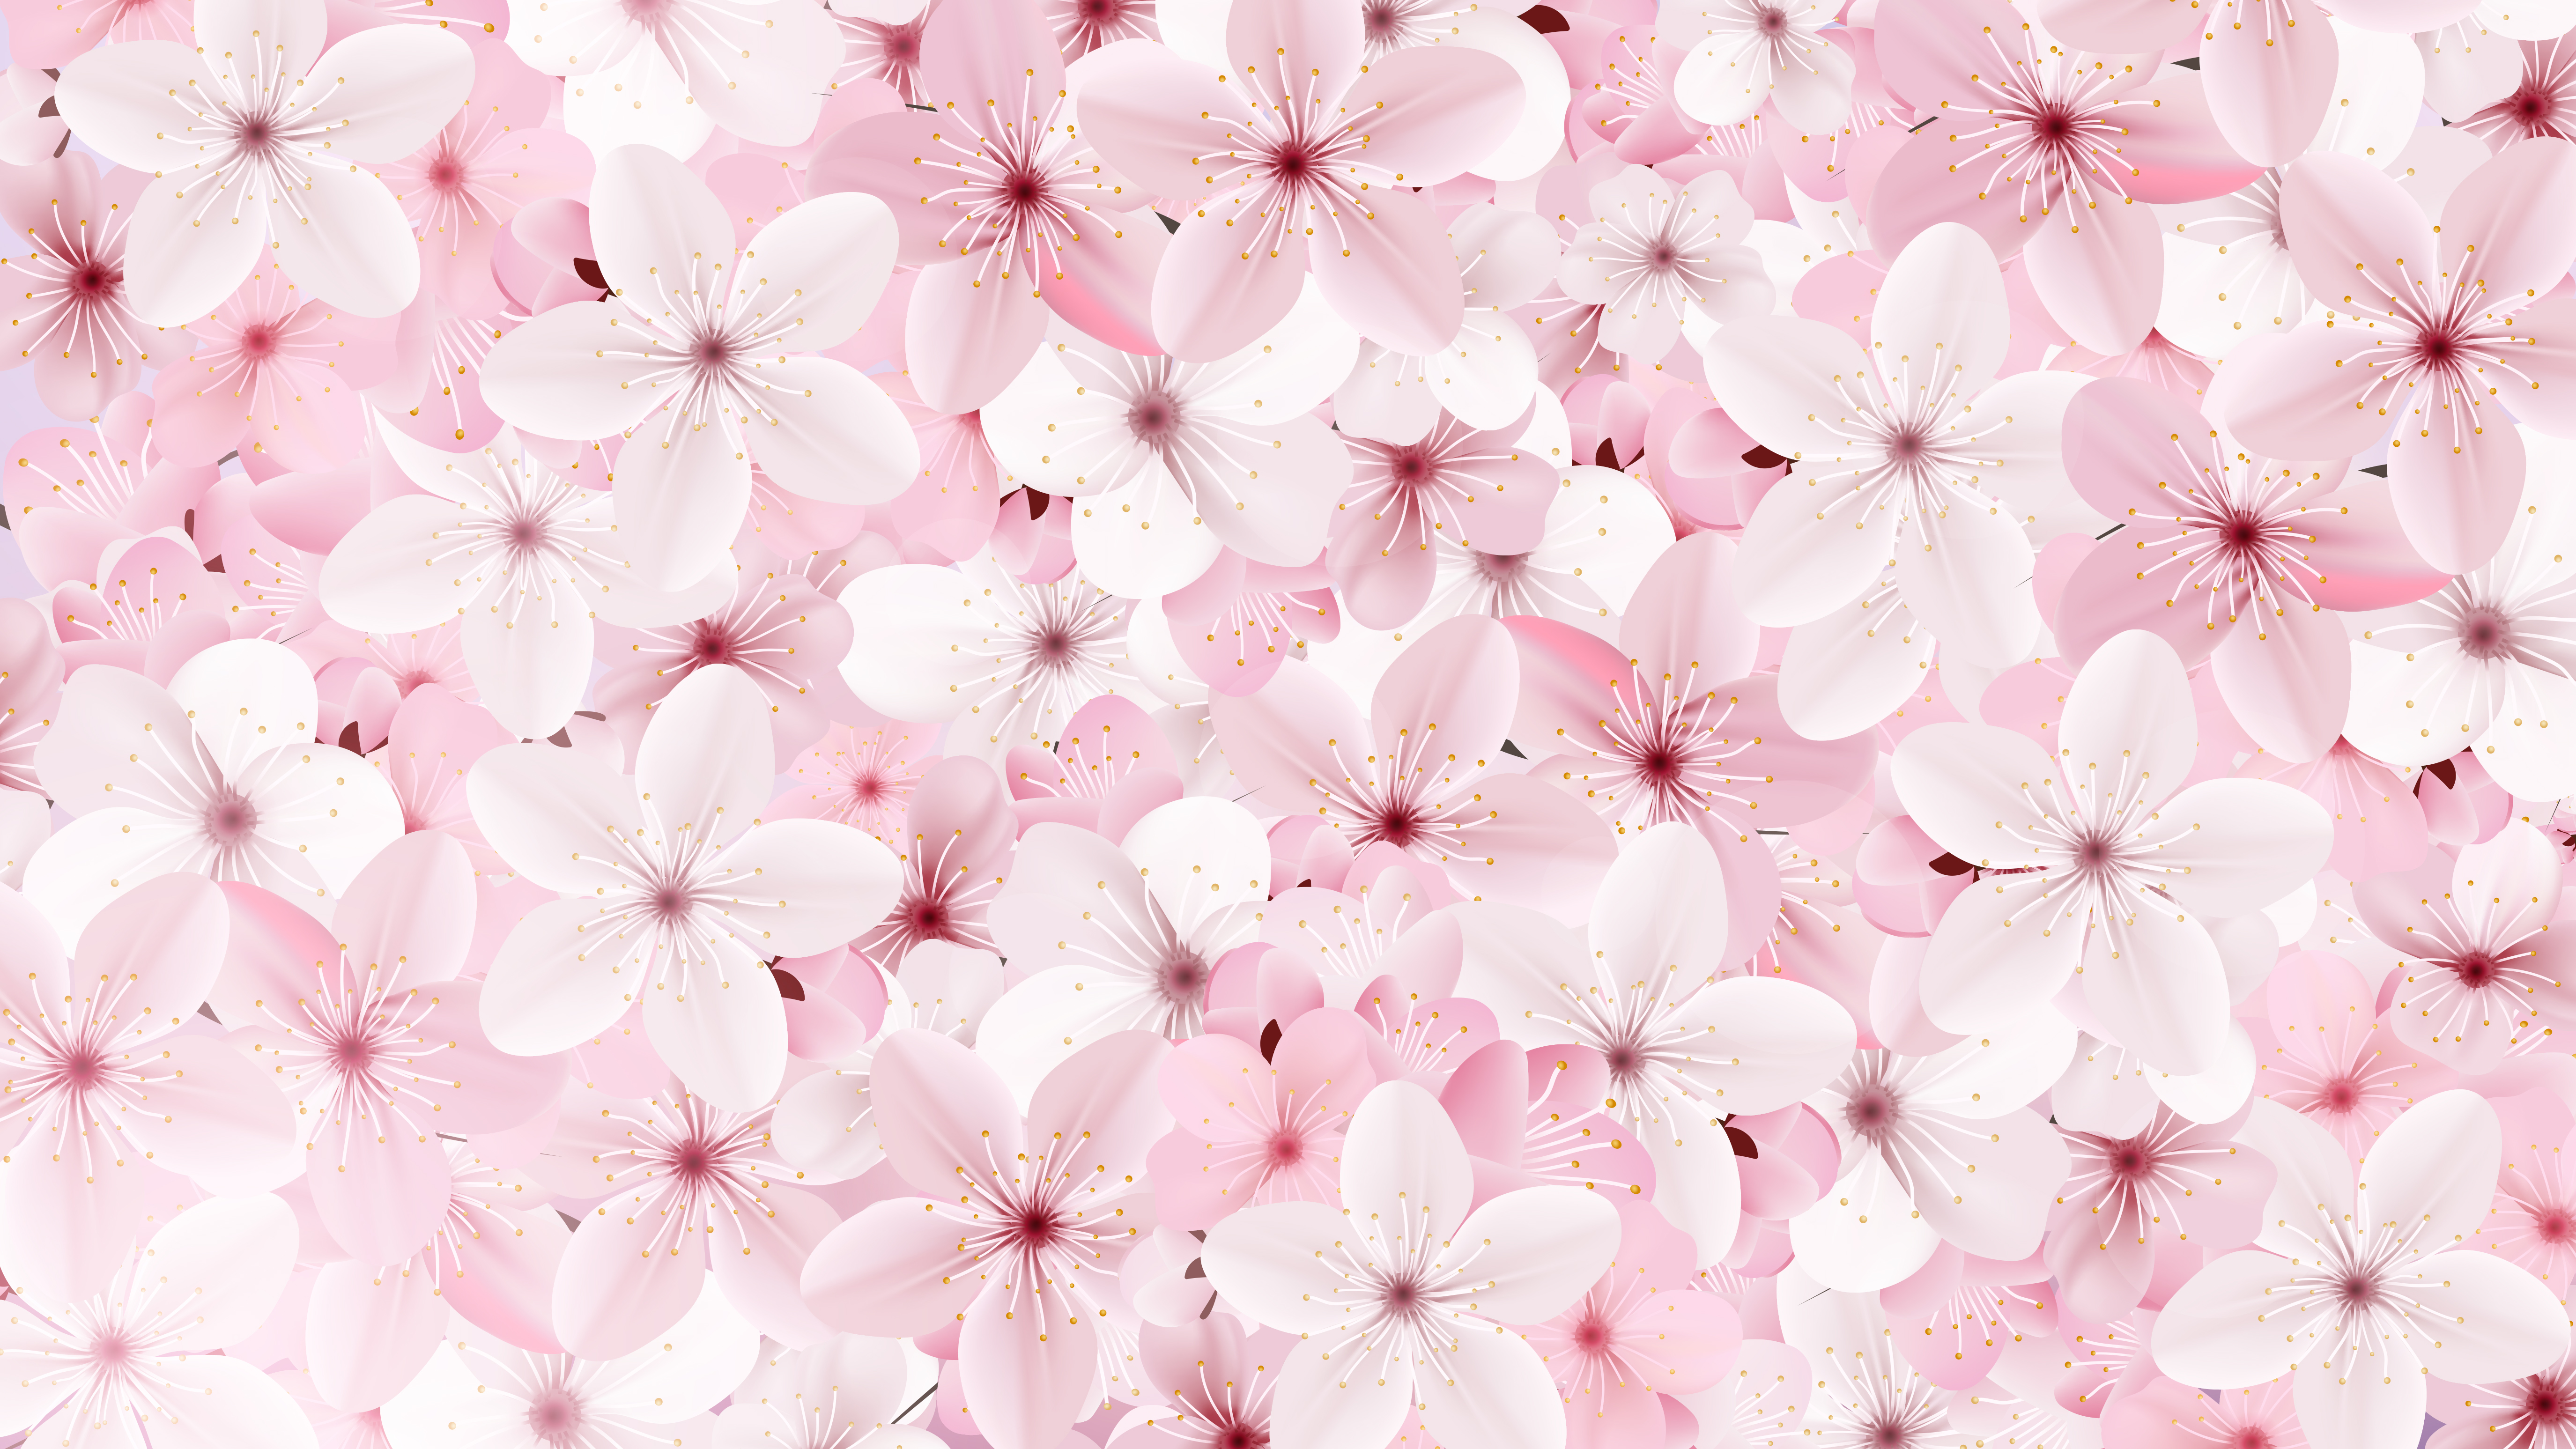 Blossoming Pink Sakura Flowers Background Download Free Vectors